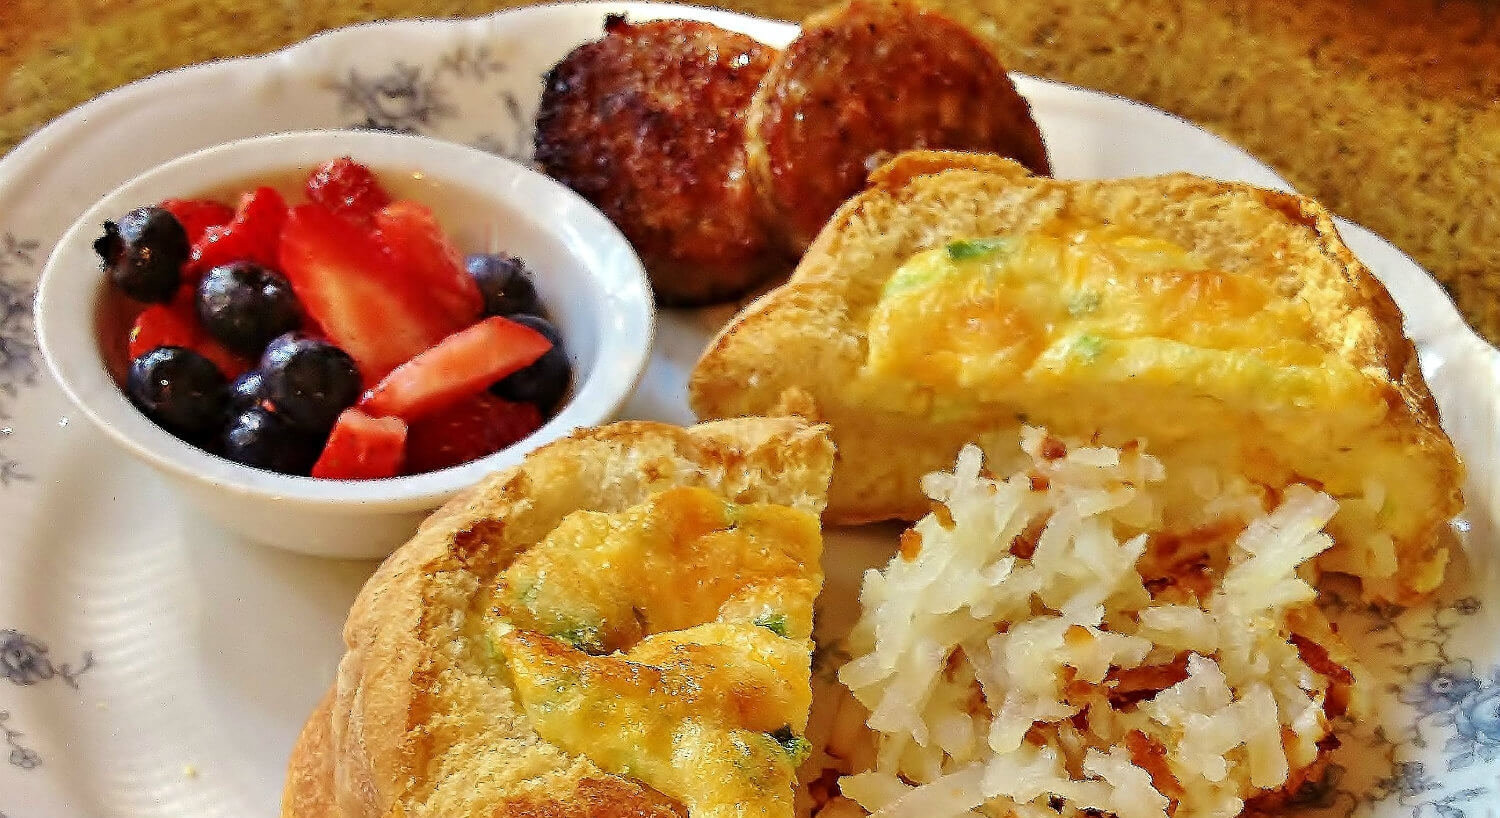 Lavish breakfast dish includes golden hash browns, egg dish, colorful fruit, and a muffin